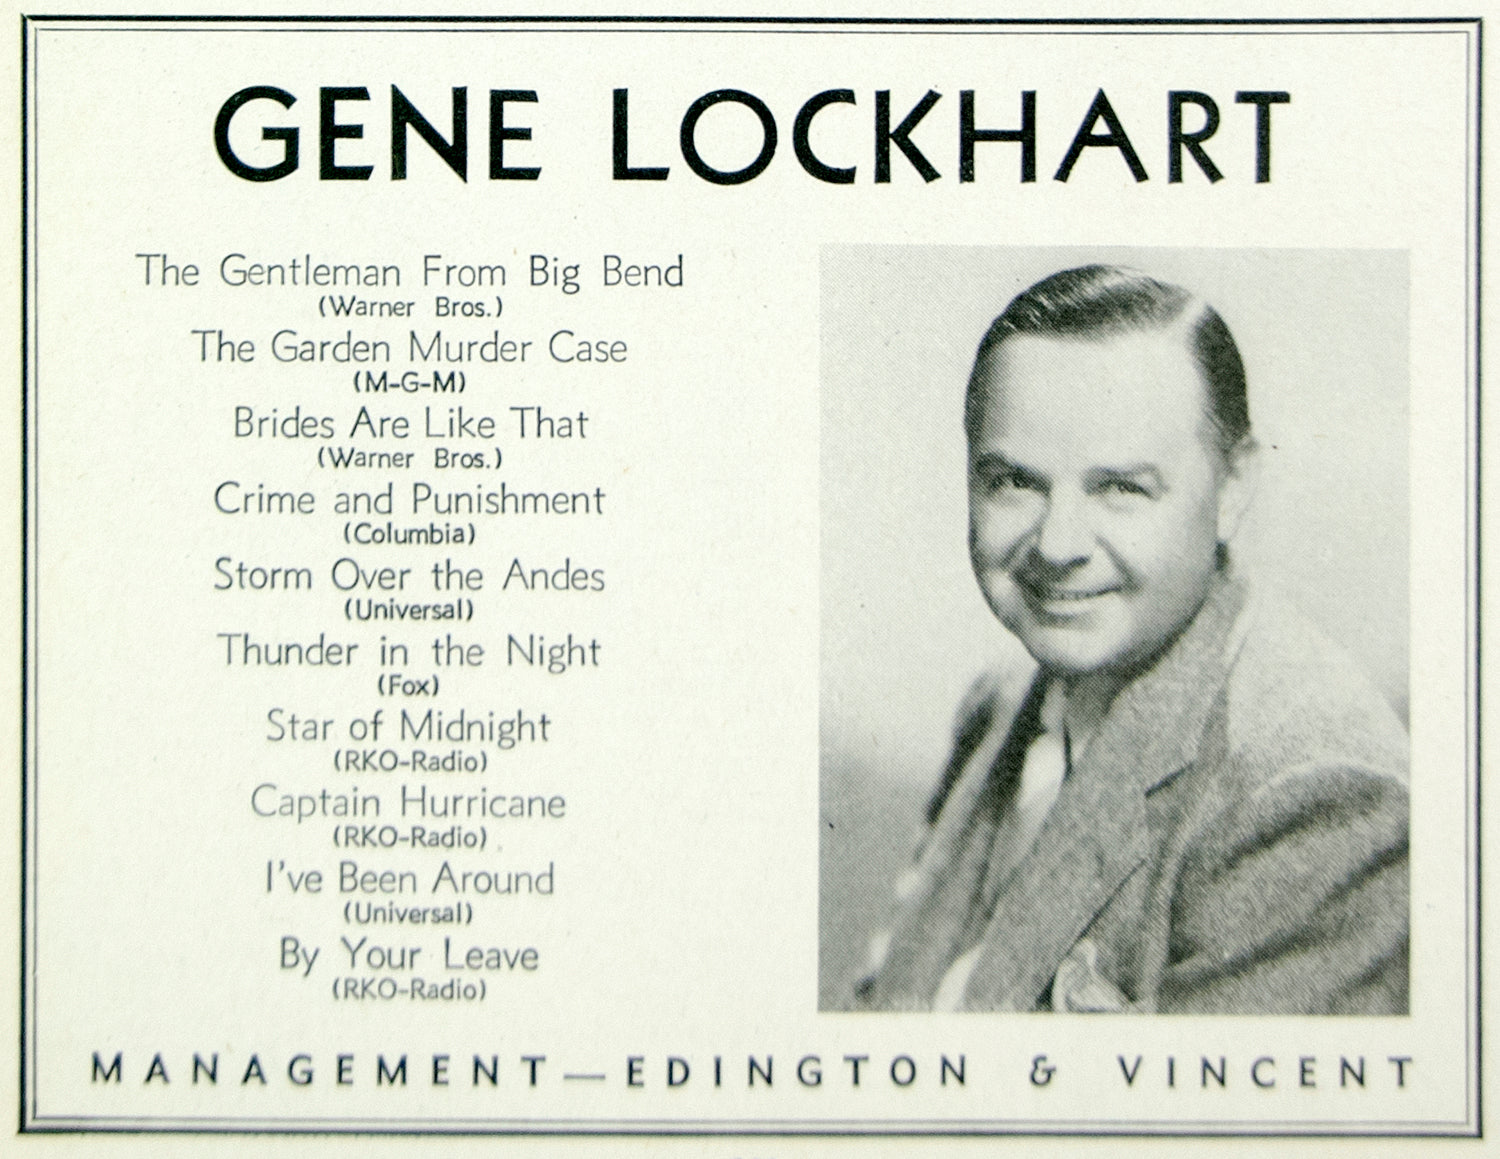 1936 Ad Eugene Gene Lockhart Actor Movie Film Canadian Edington & Vincent MOVIE3